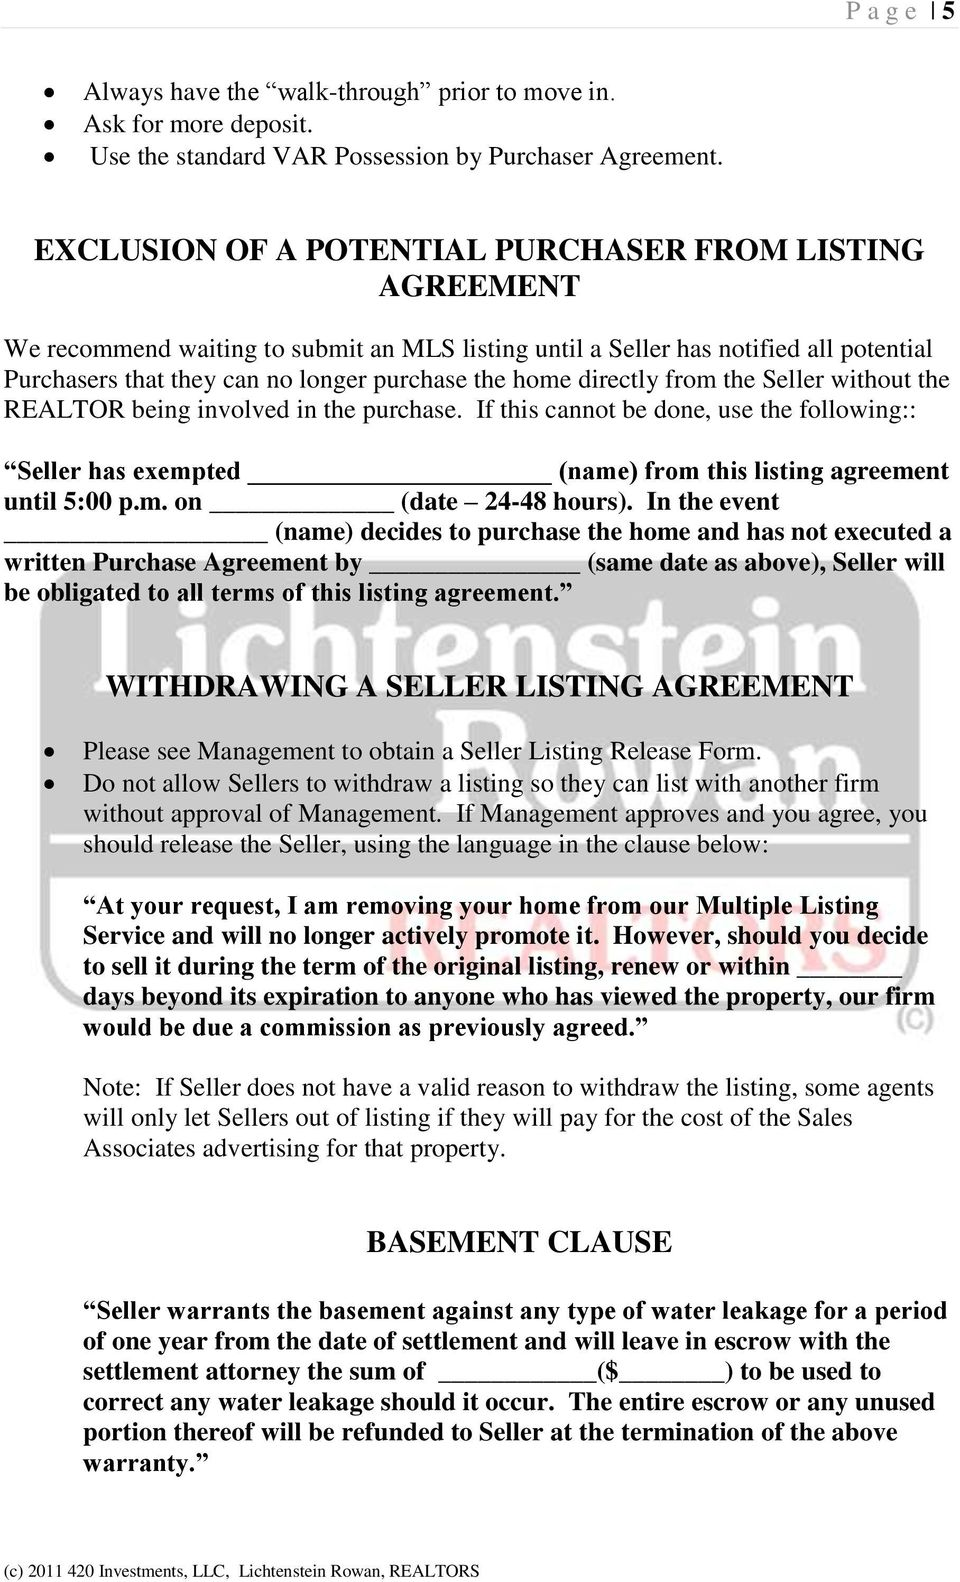 Purchase Listing Agreement Clauses Pdf